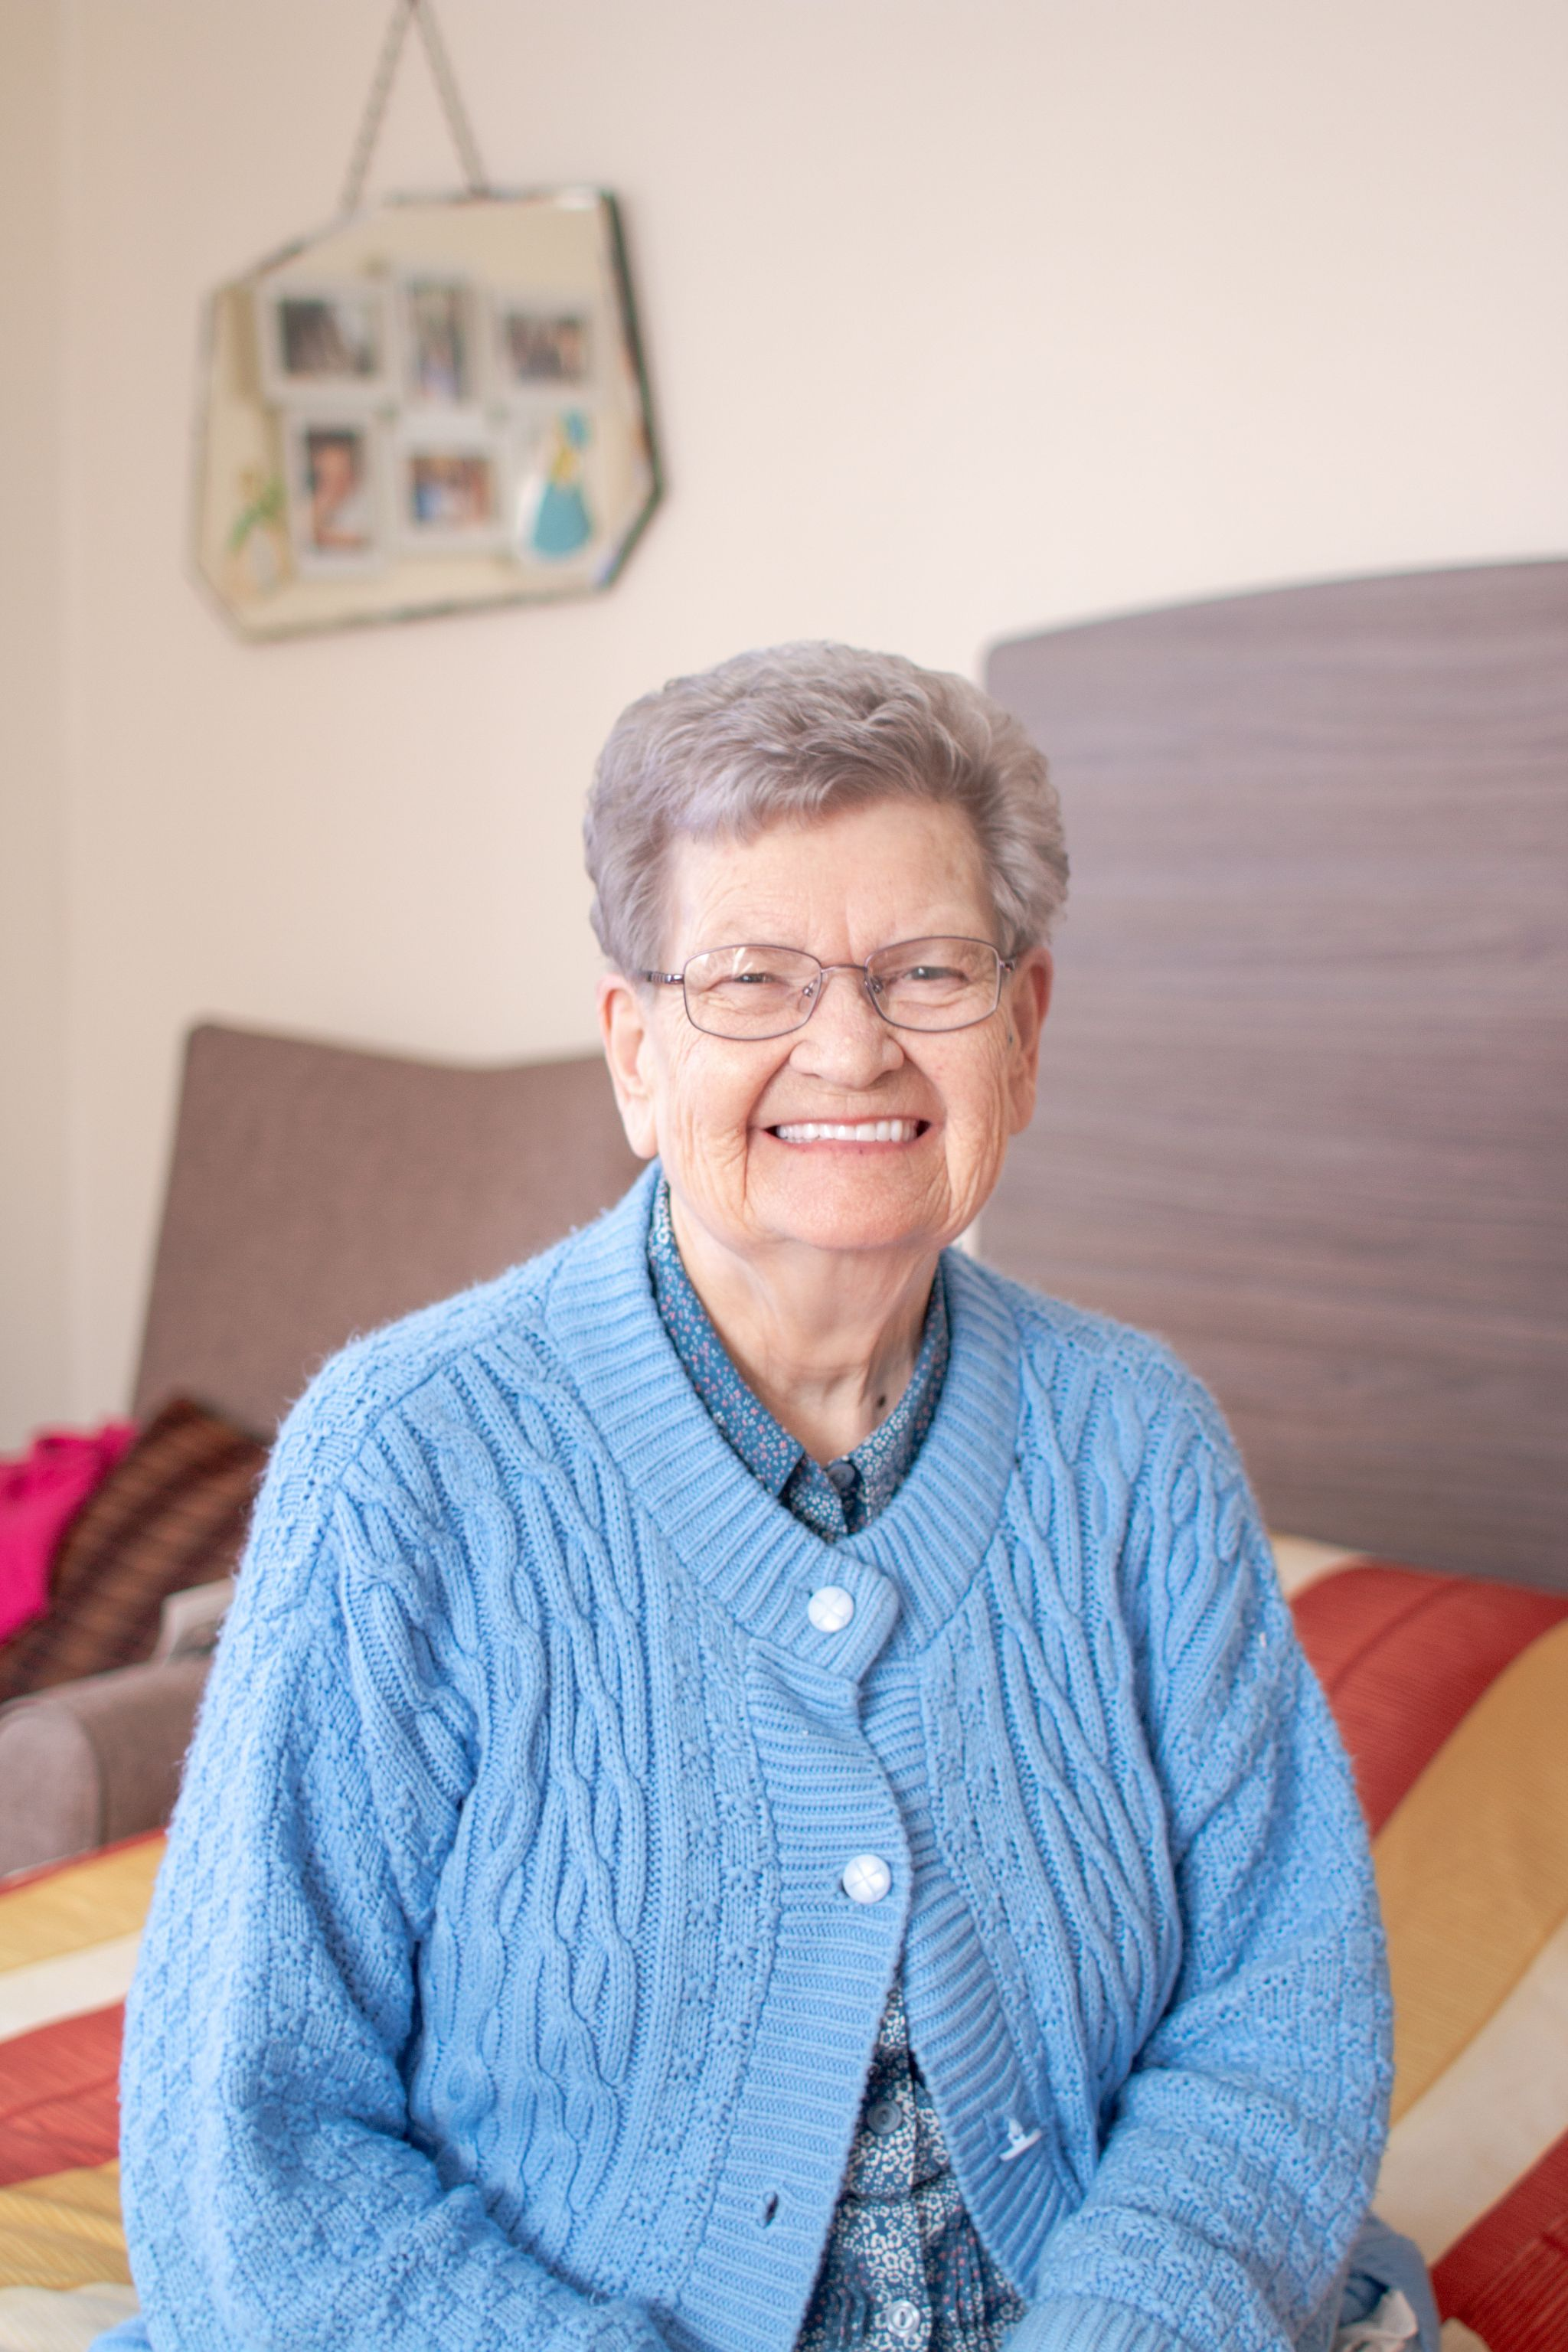 craig healthcare residents lifestyle photography hannah layford resident smiling